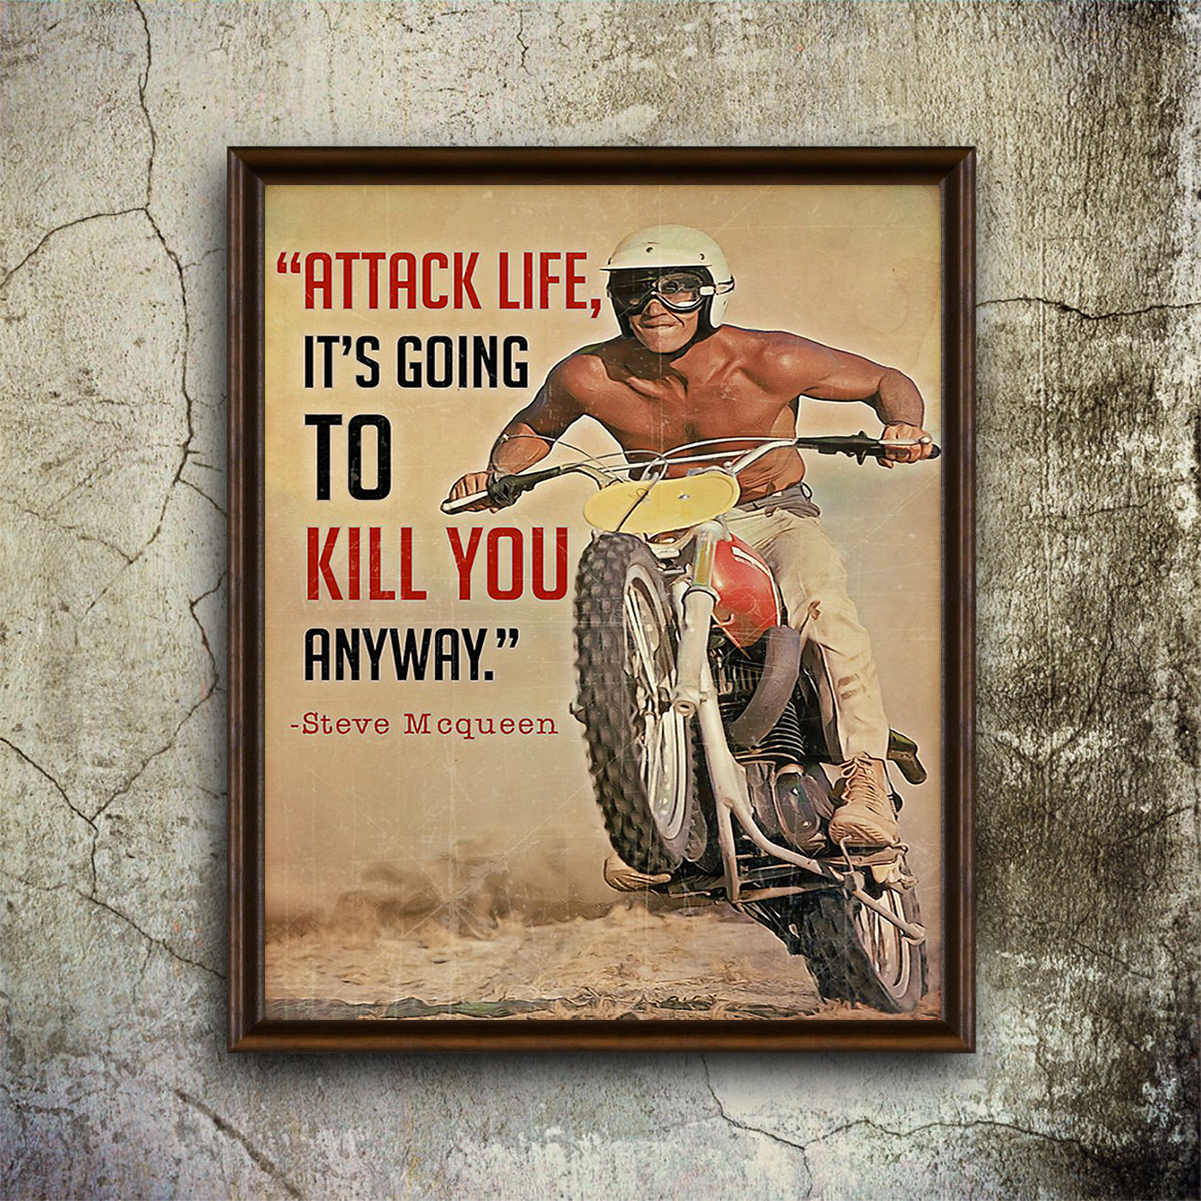 Steve mqueen attack life it's going to kill you anyway poster A1